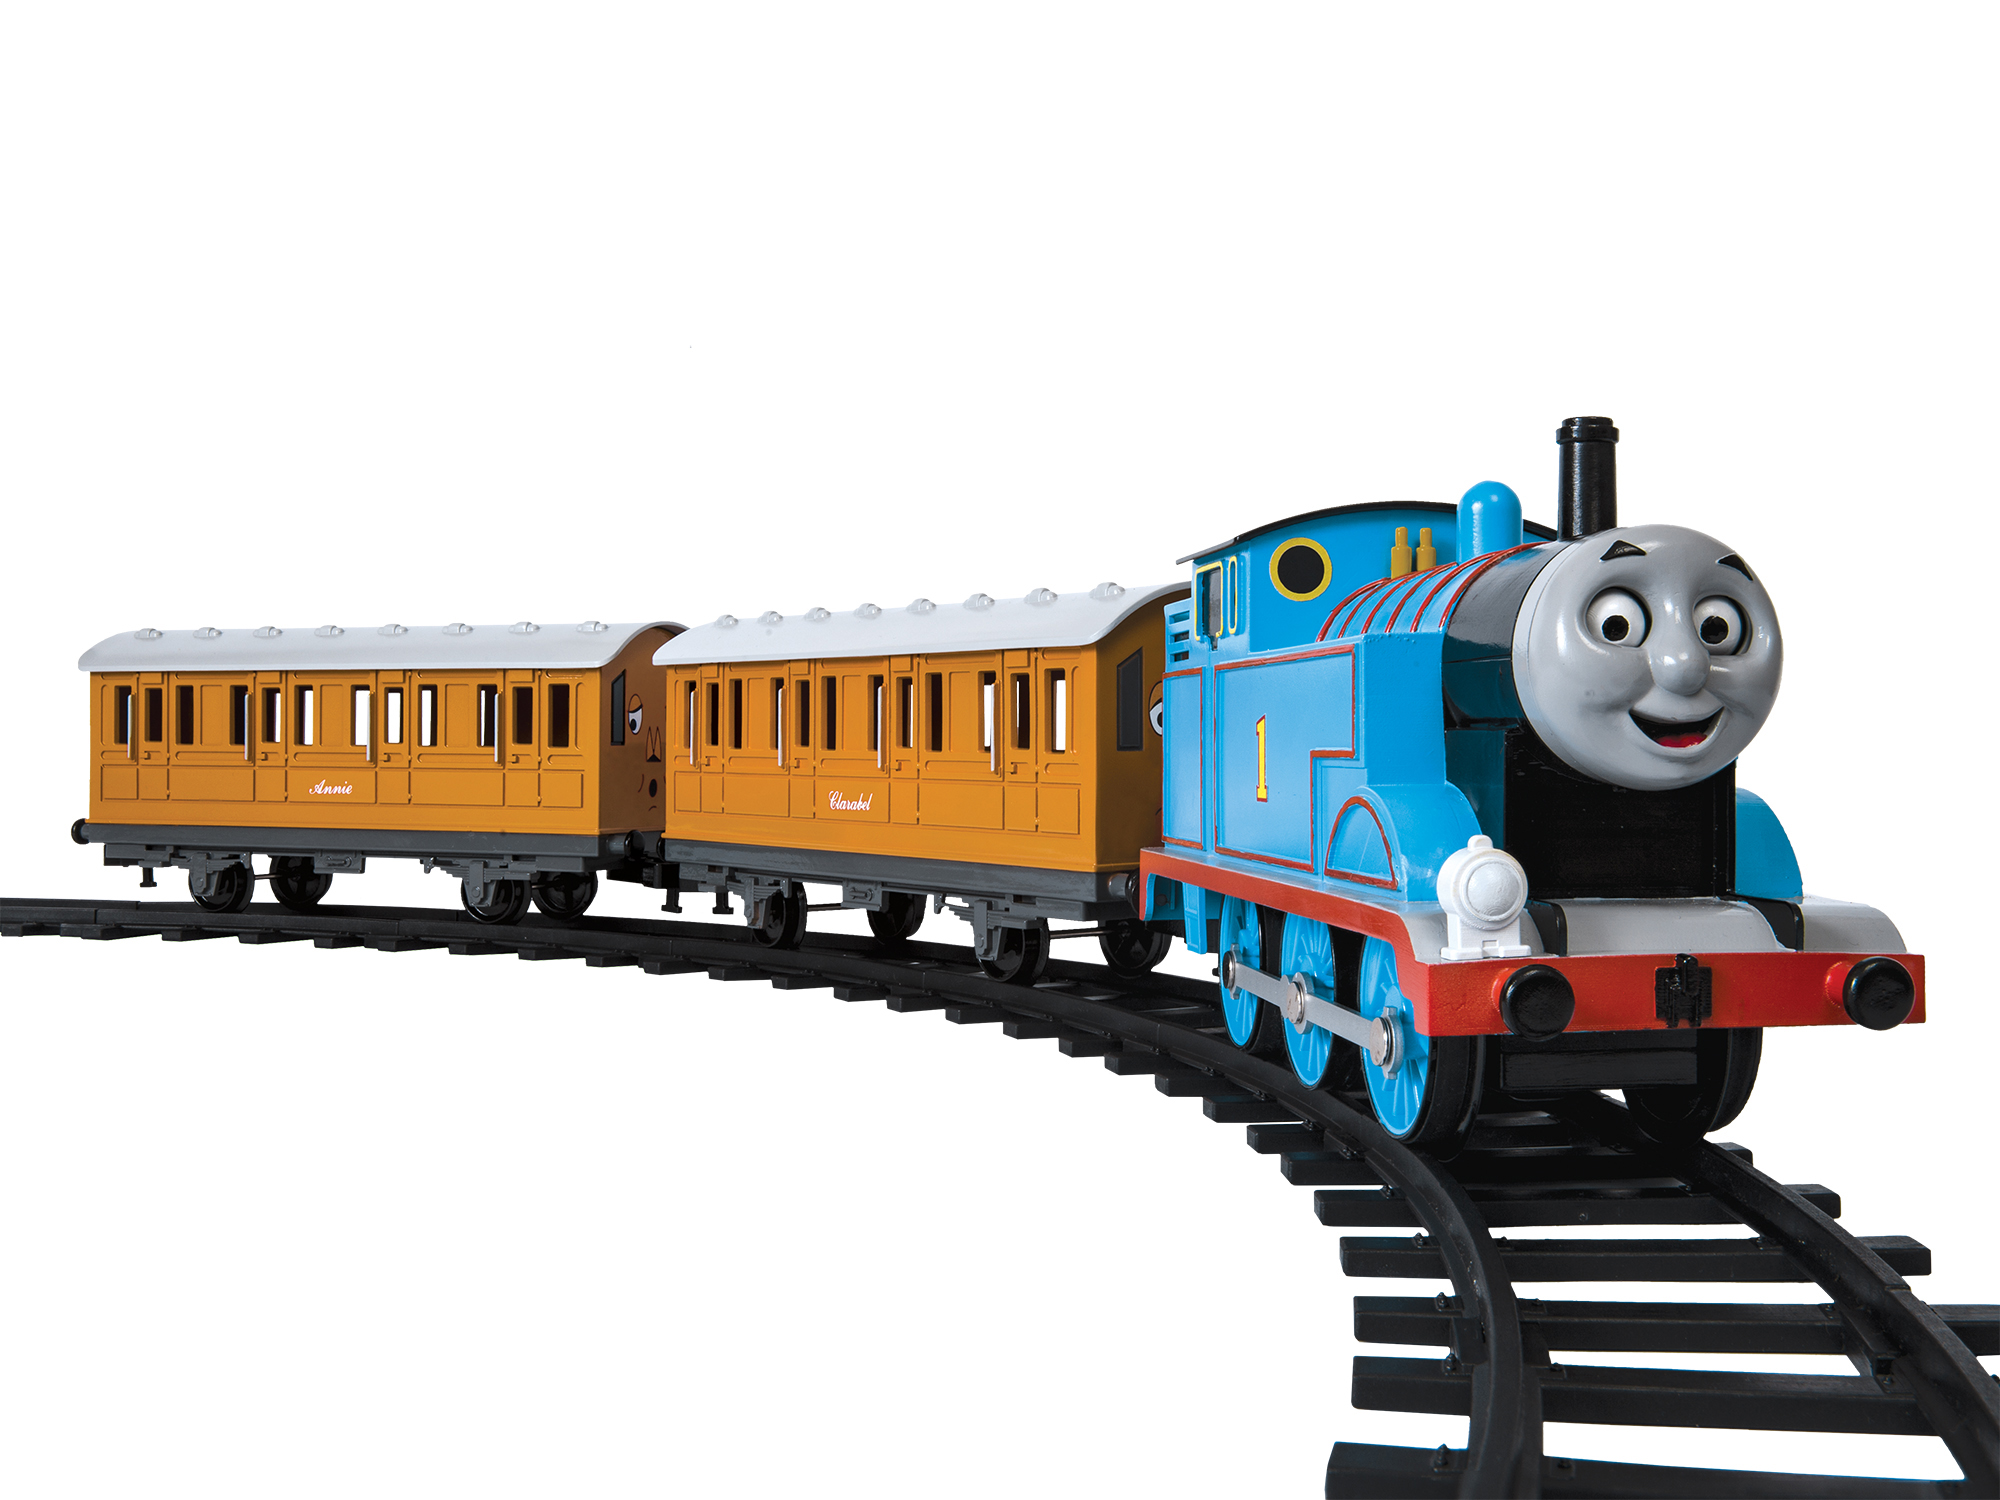 Lionel 711903 G Thomas and Friends Set Ready-to-Play Thomas 0-6-0 Annie Clarabel 434-711903